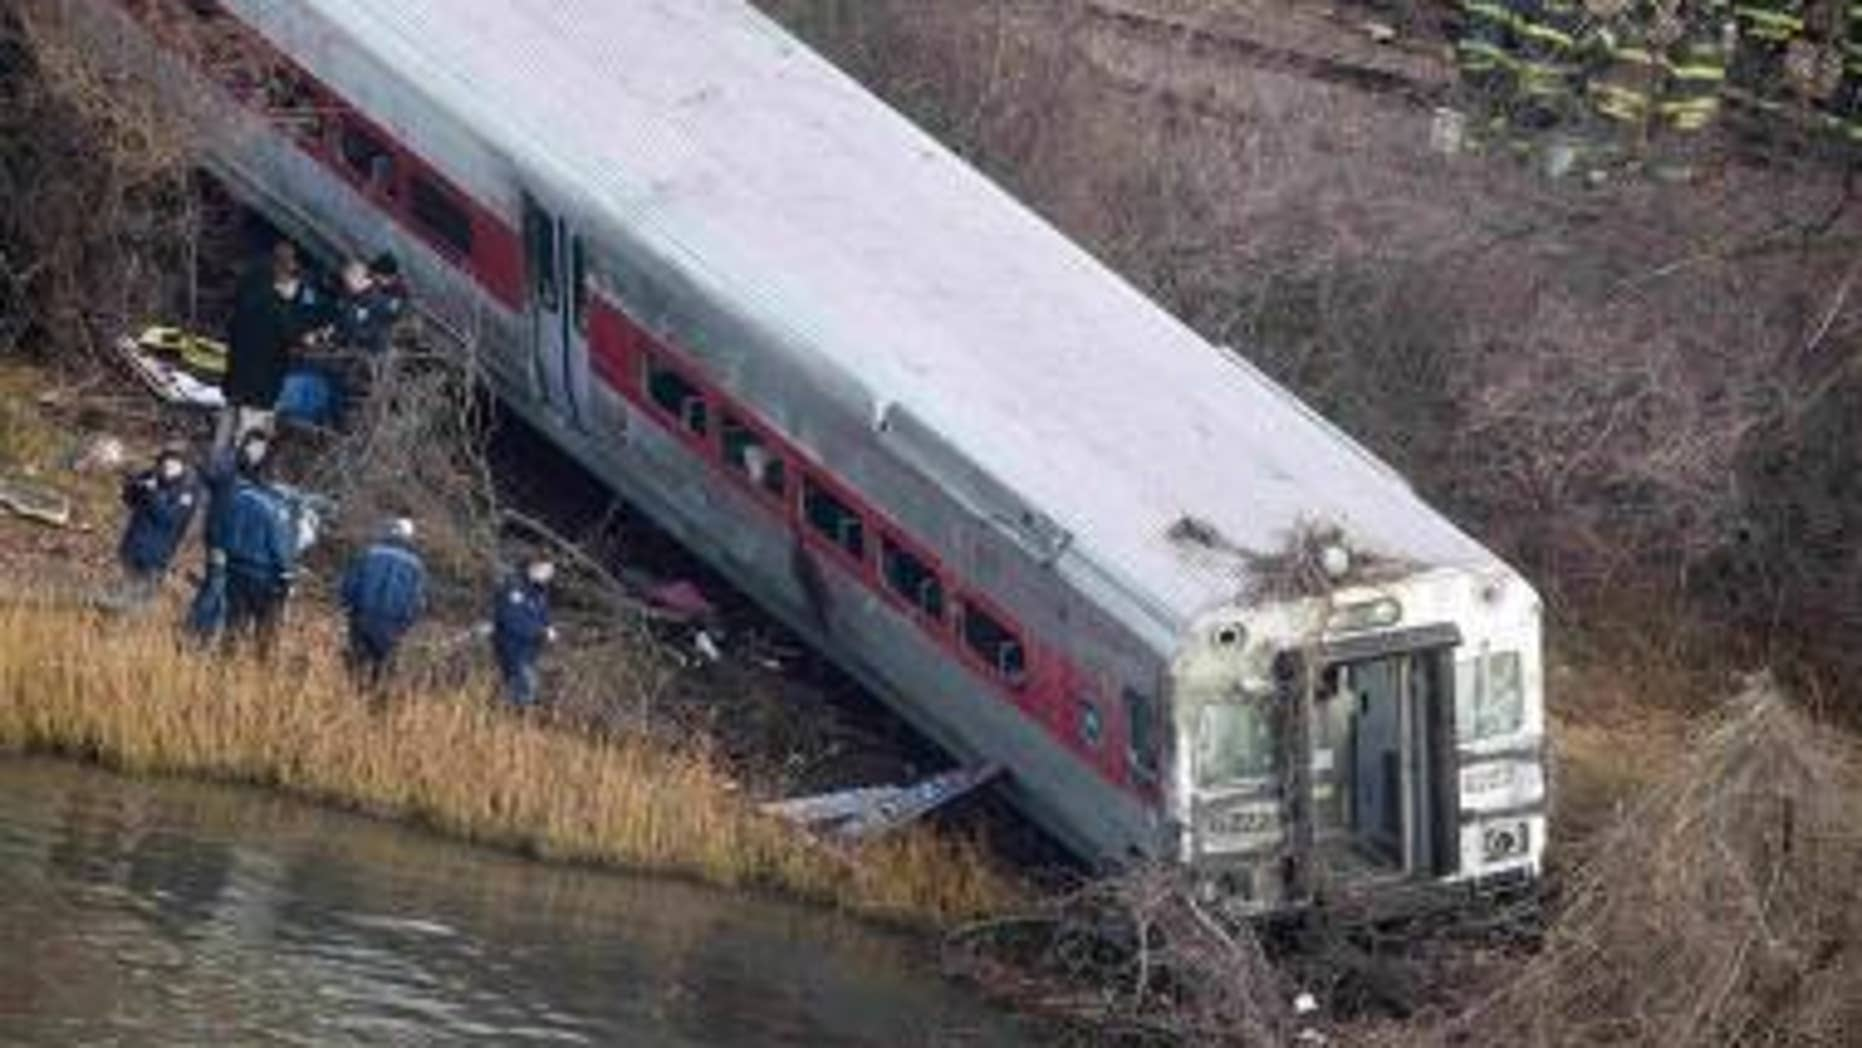 Emergency workers gather at the site of a Metro-North train derailment in the Bronx borough of New York, Dec. 1, 2013.